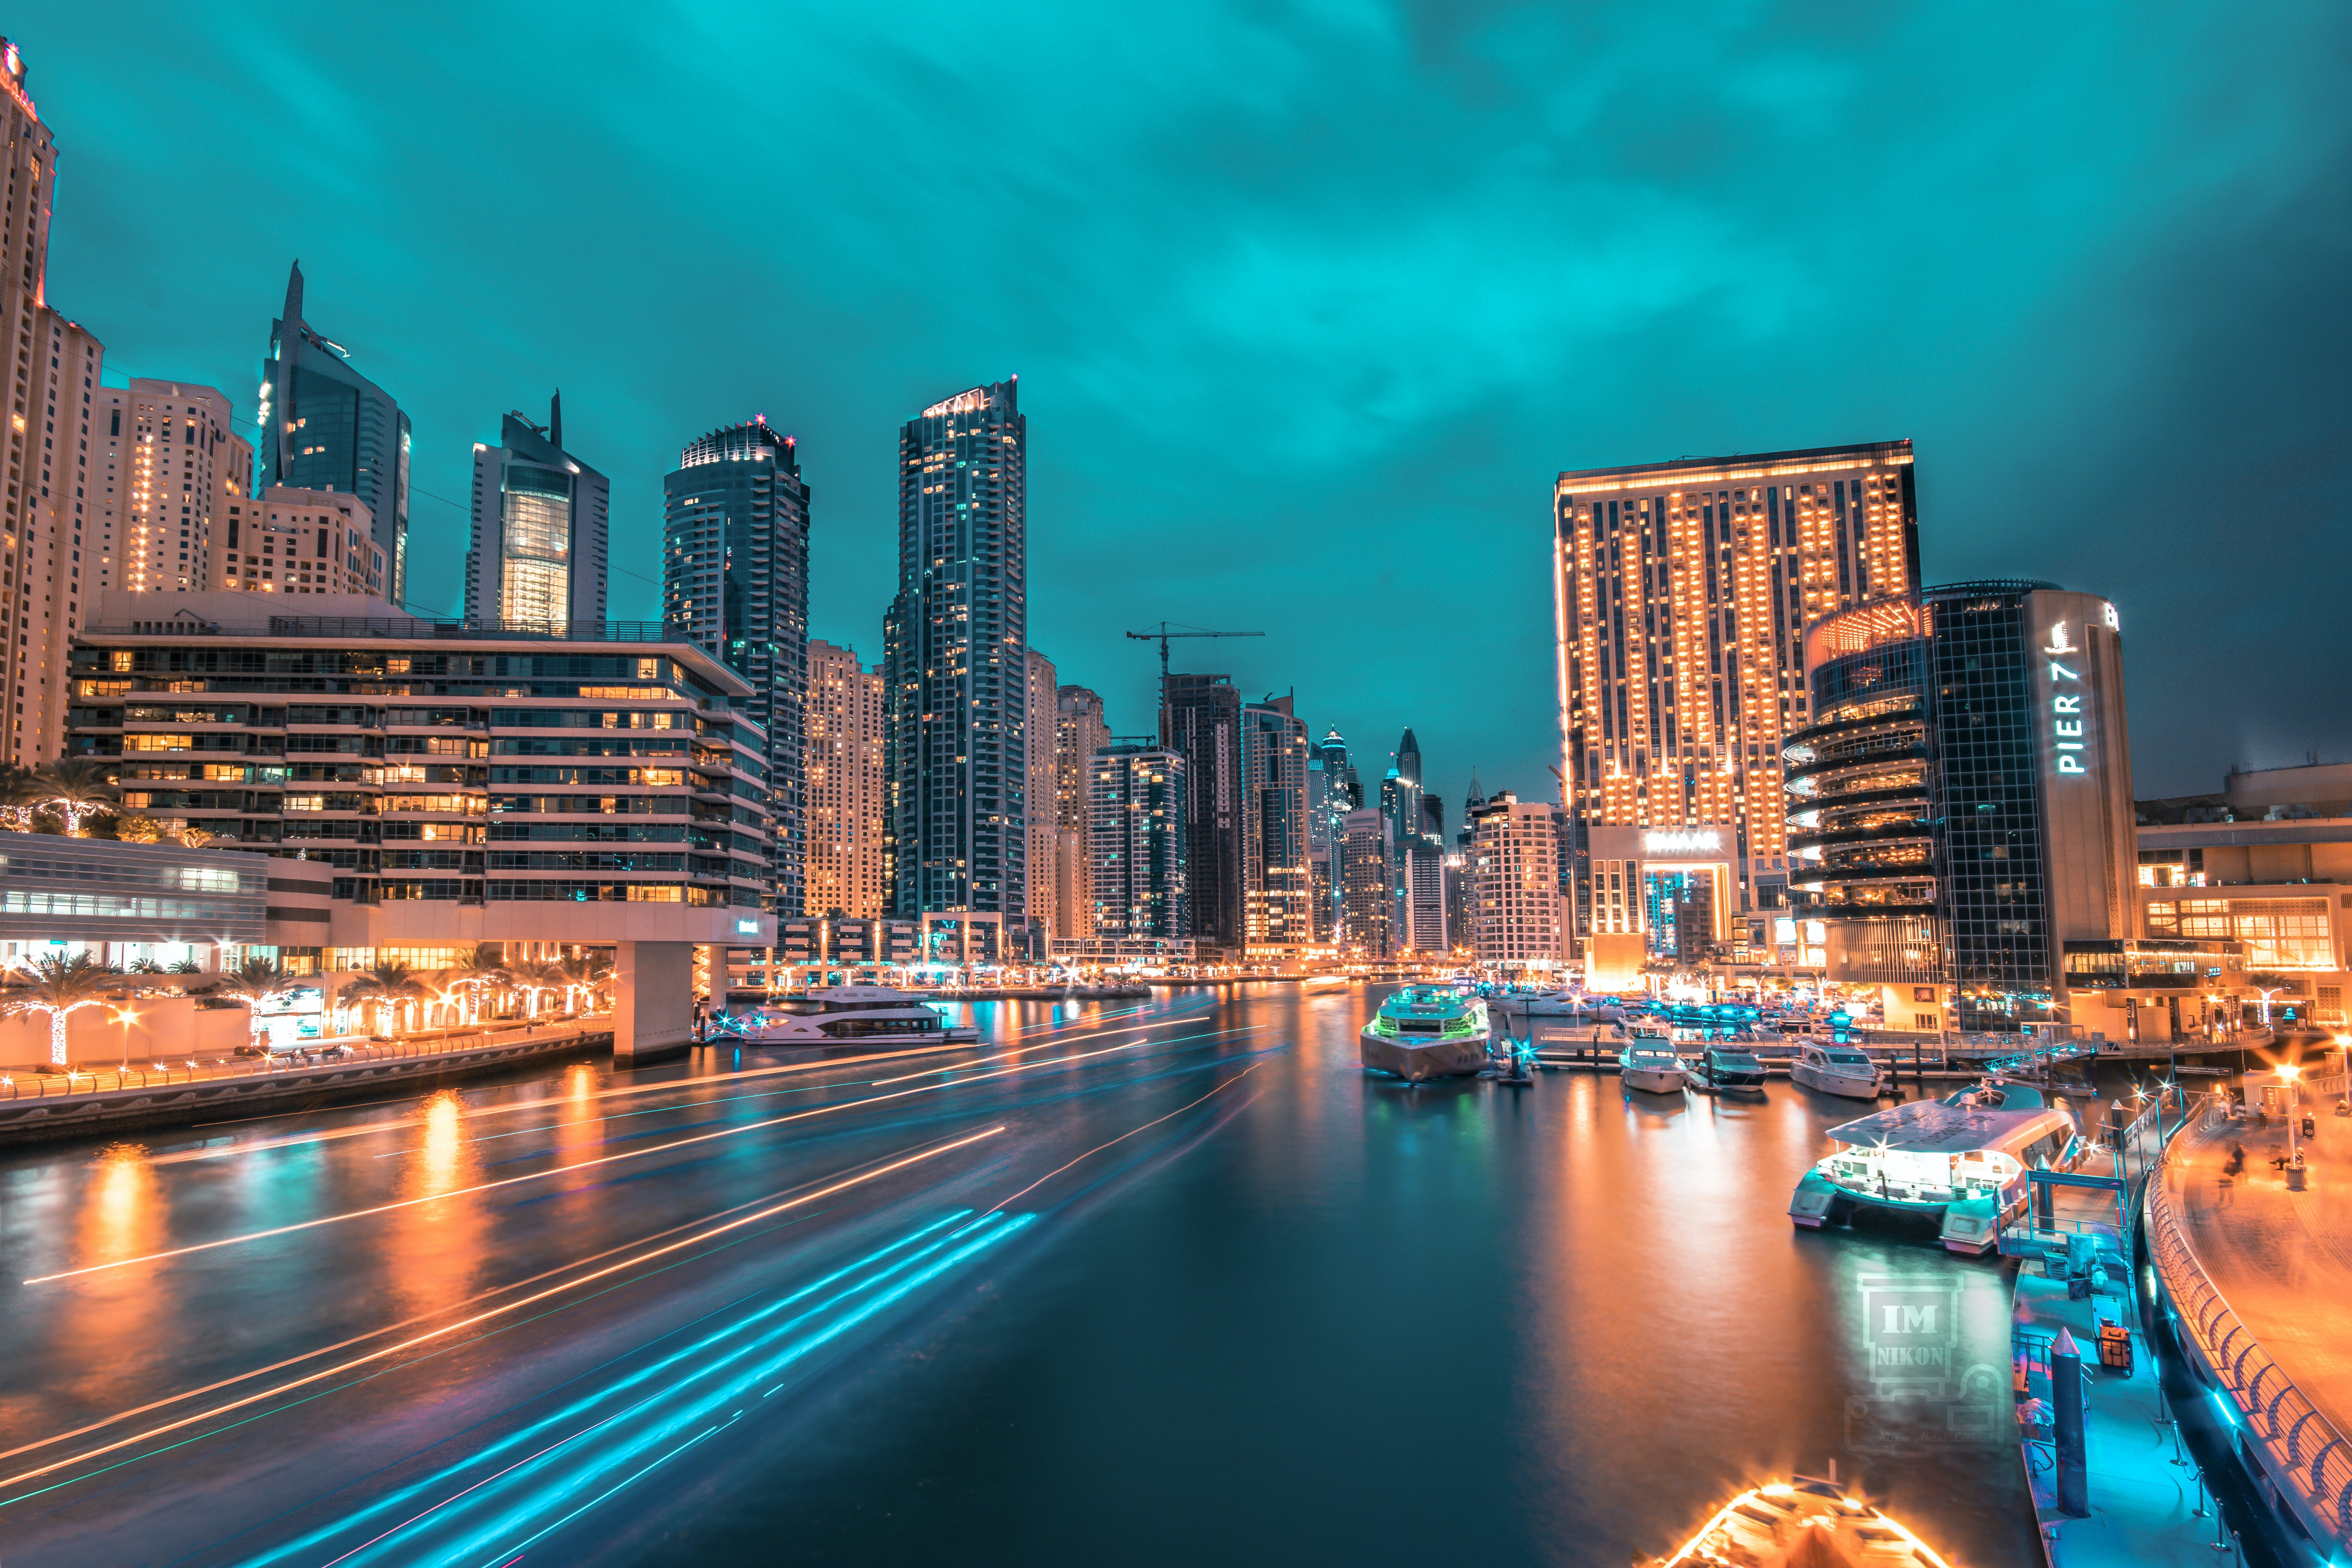 Time Lapse Photography of Road With High-rise Buildings